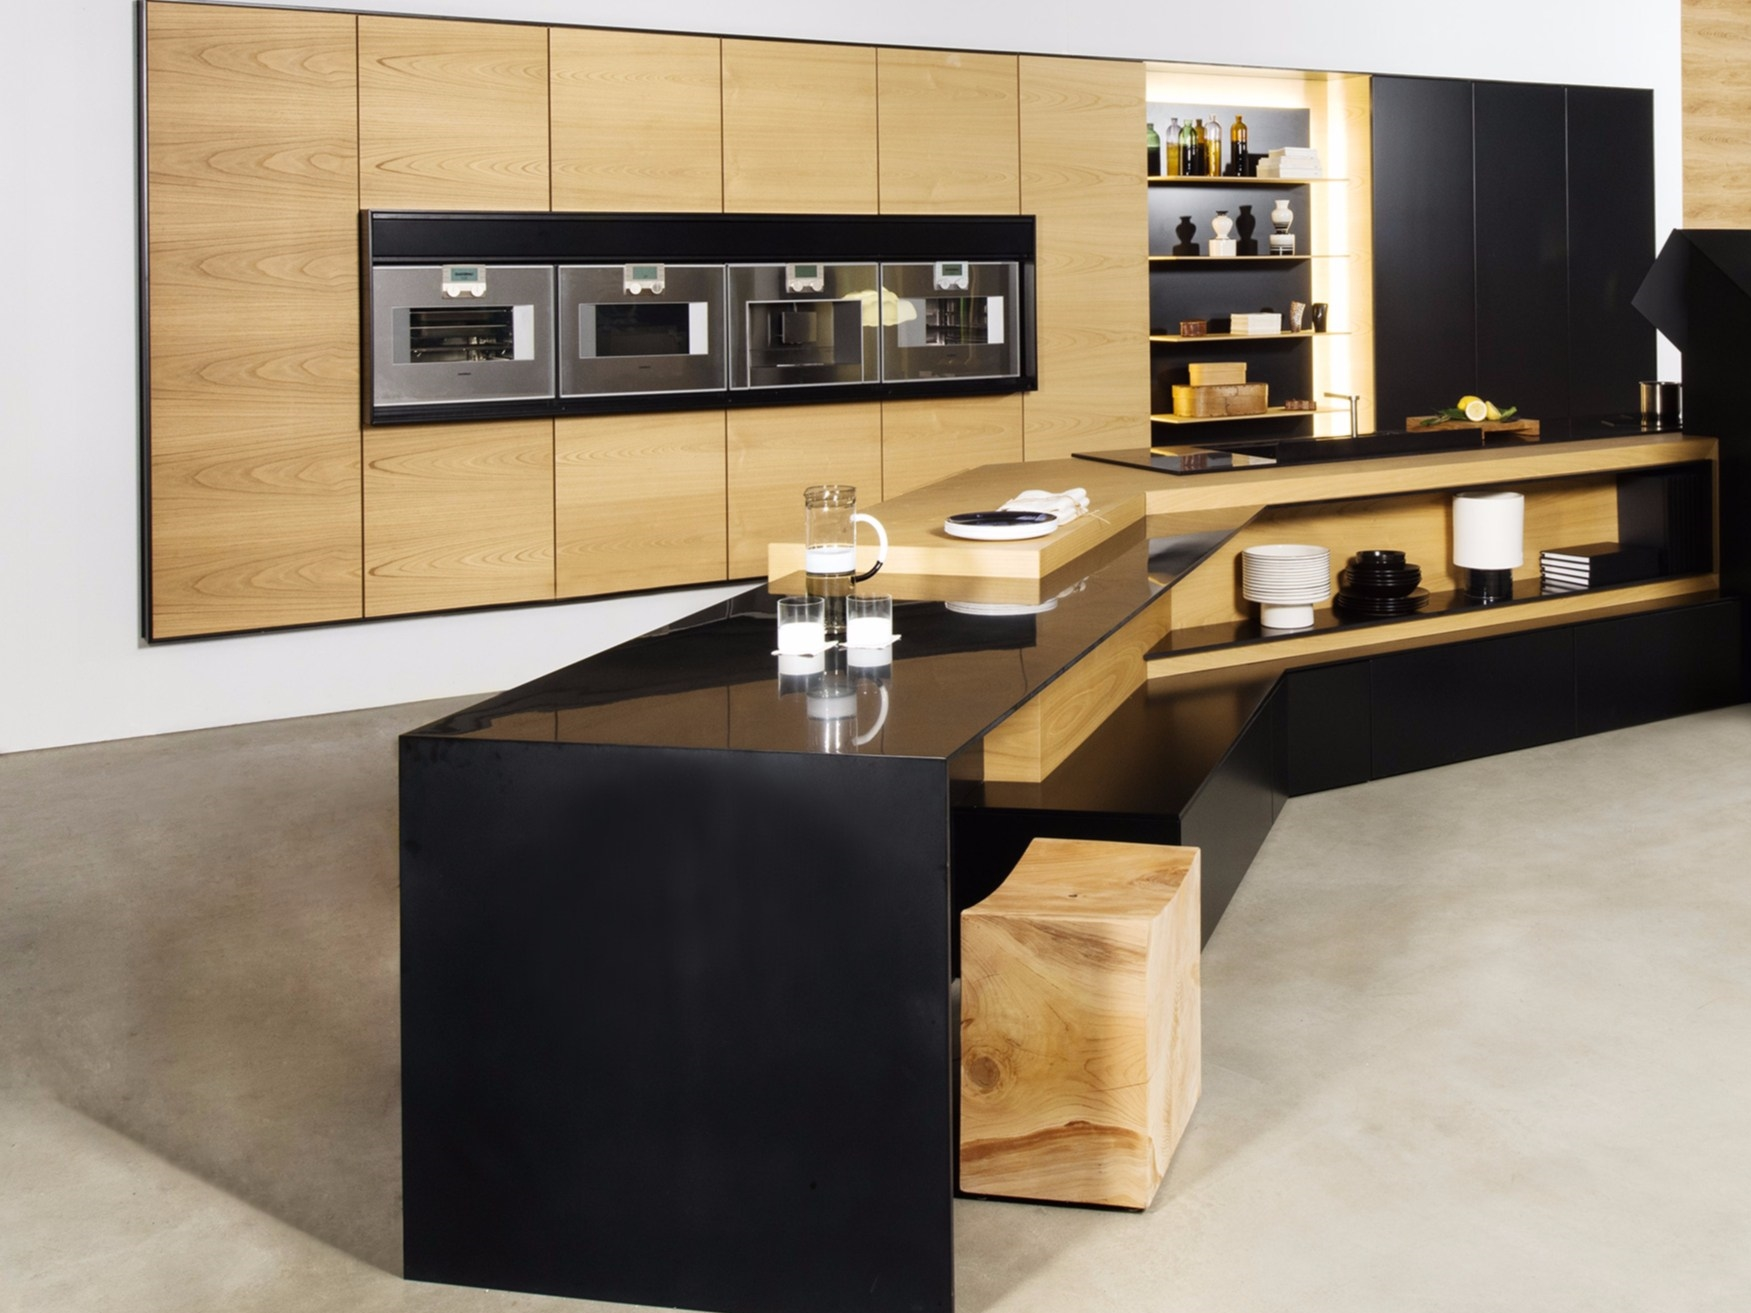 kitchen with peninsula fx carbon lab collection by tm italia cucine design ruadelpapavero